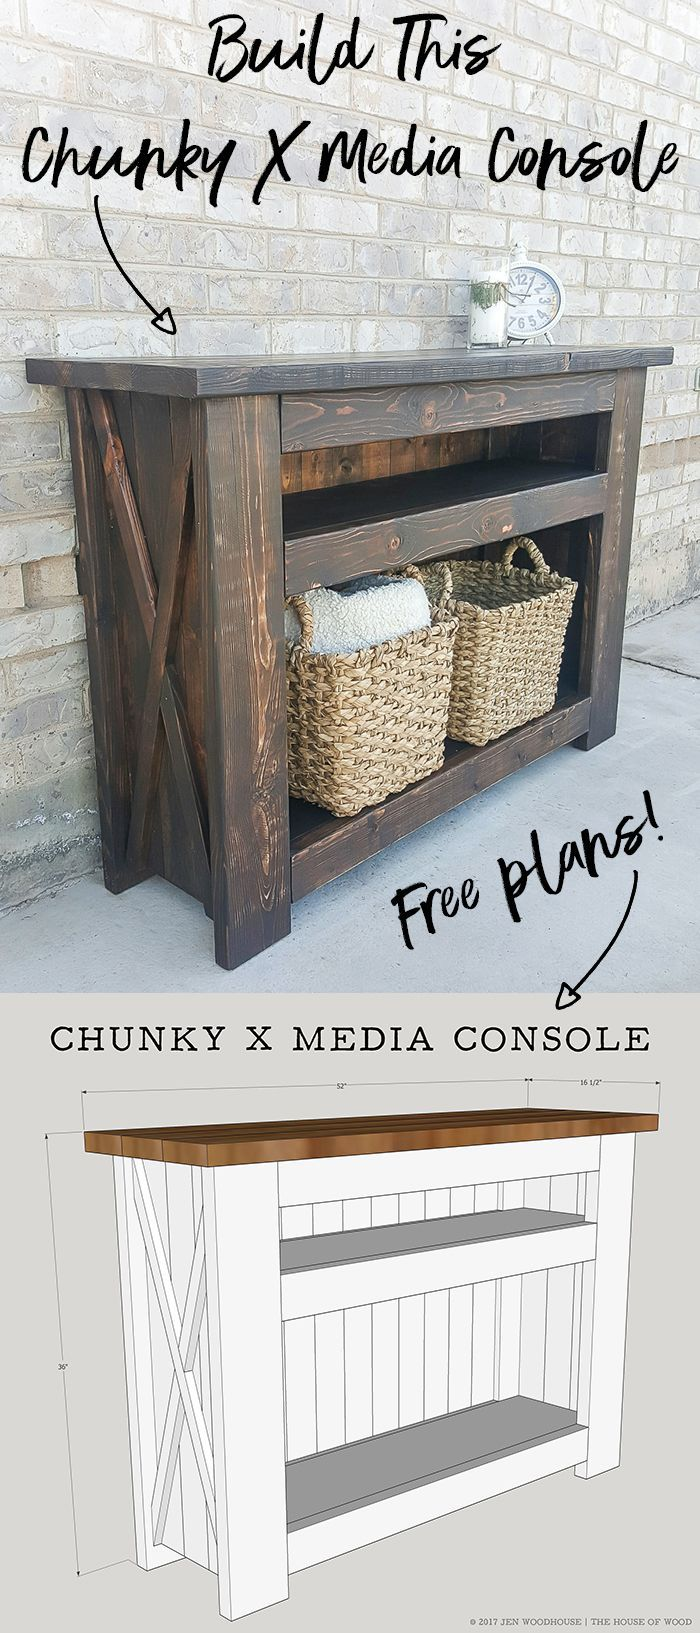 How to build a DIY chunky X media console